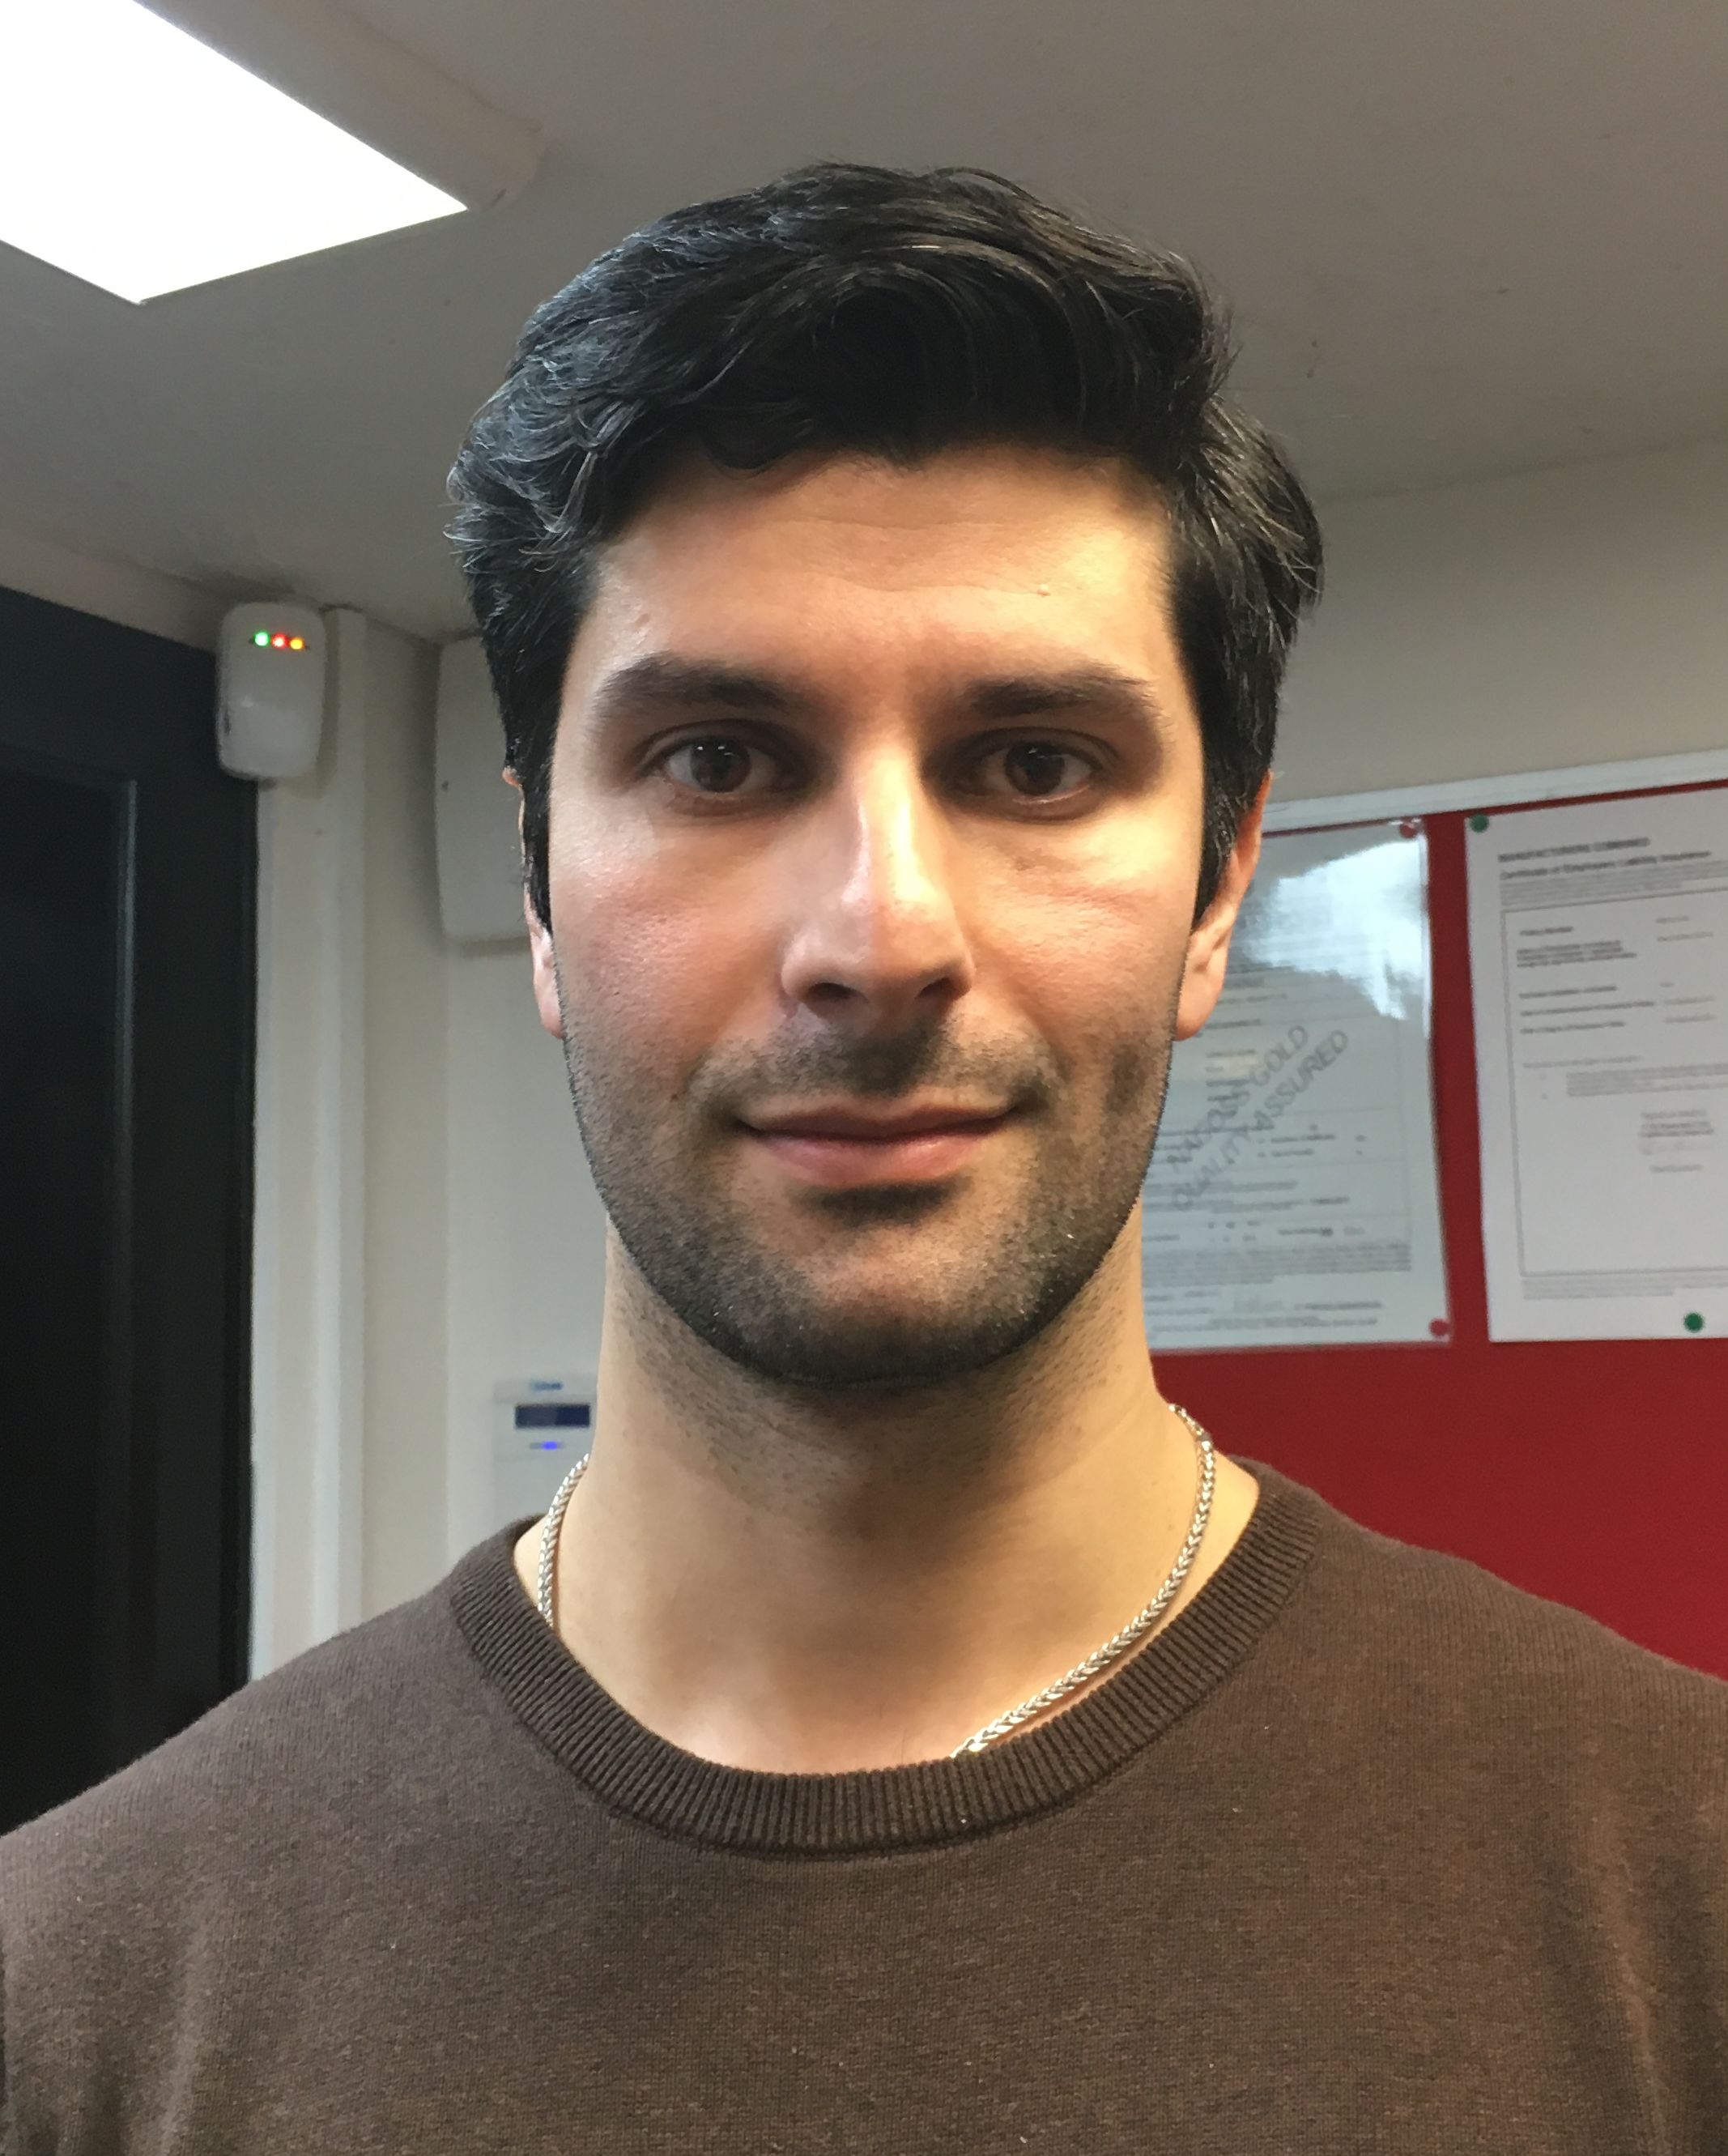 Our engineer, Dr Mehdi Hendijanizadeh - Research Fellow in Electromechanical Engineer within Engineering and the Environment at the University of Southampton